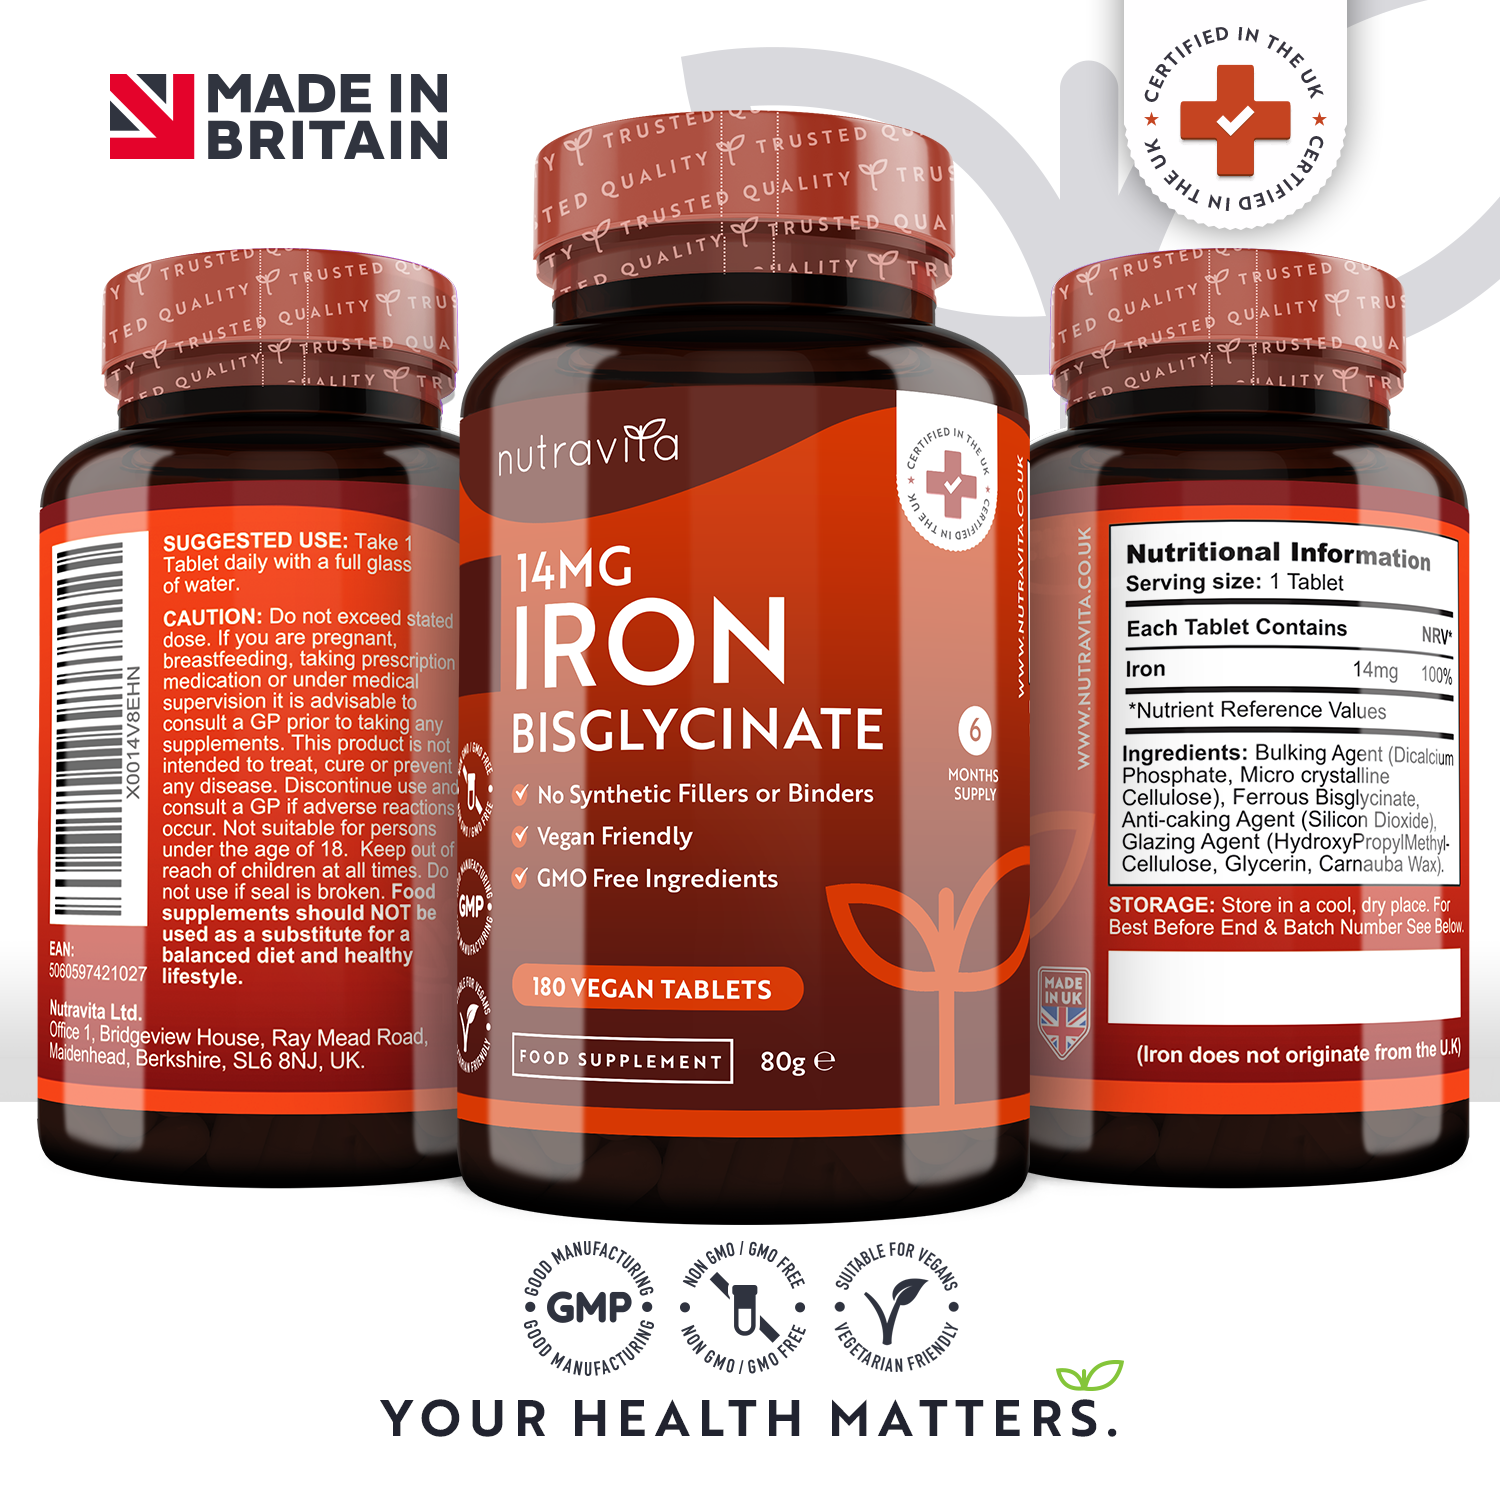 Iron Bisglycinate 14mg 180 Vegan Tablets